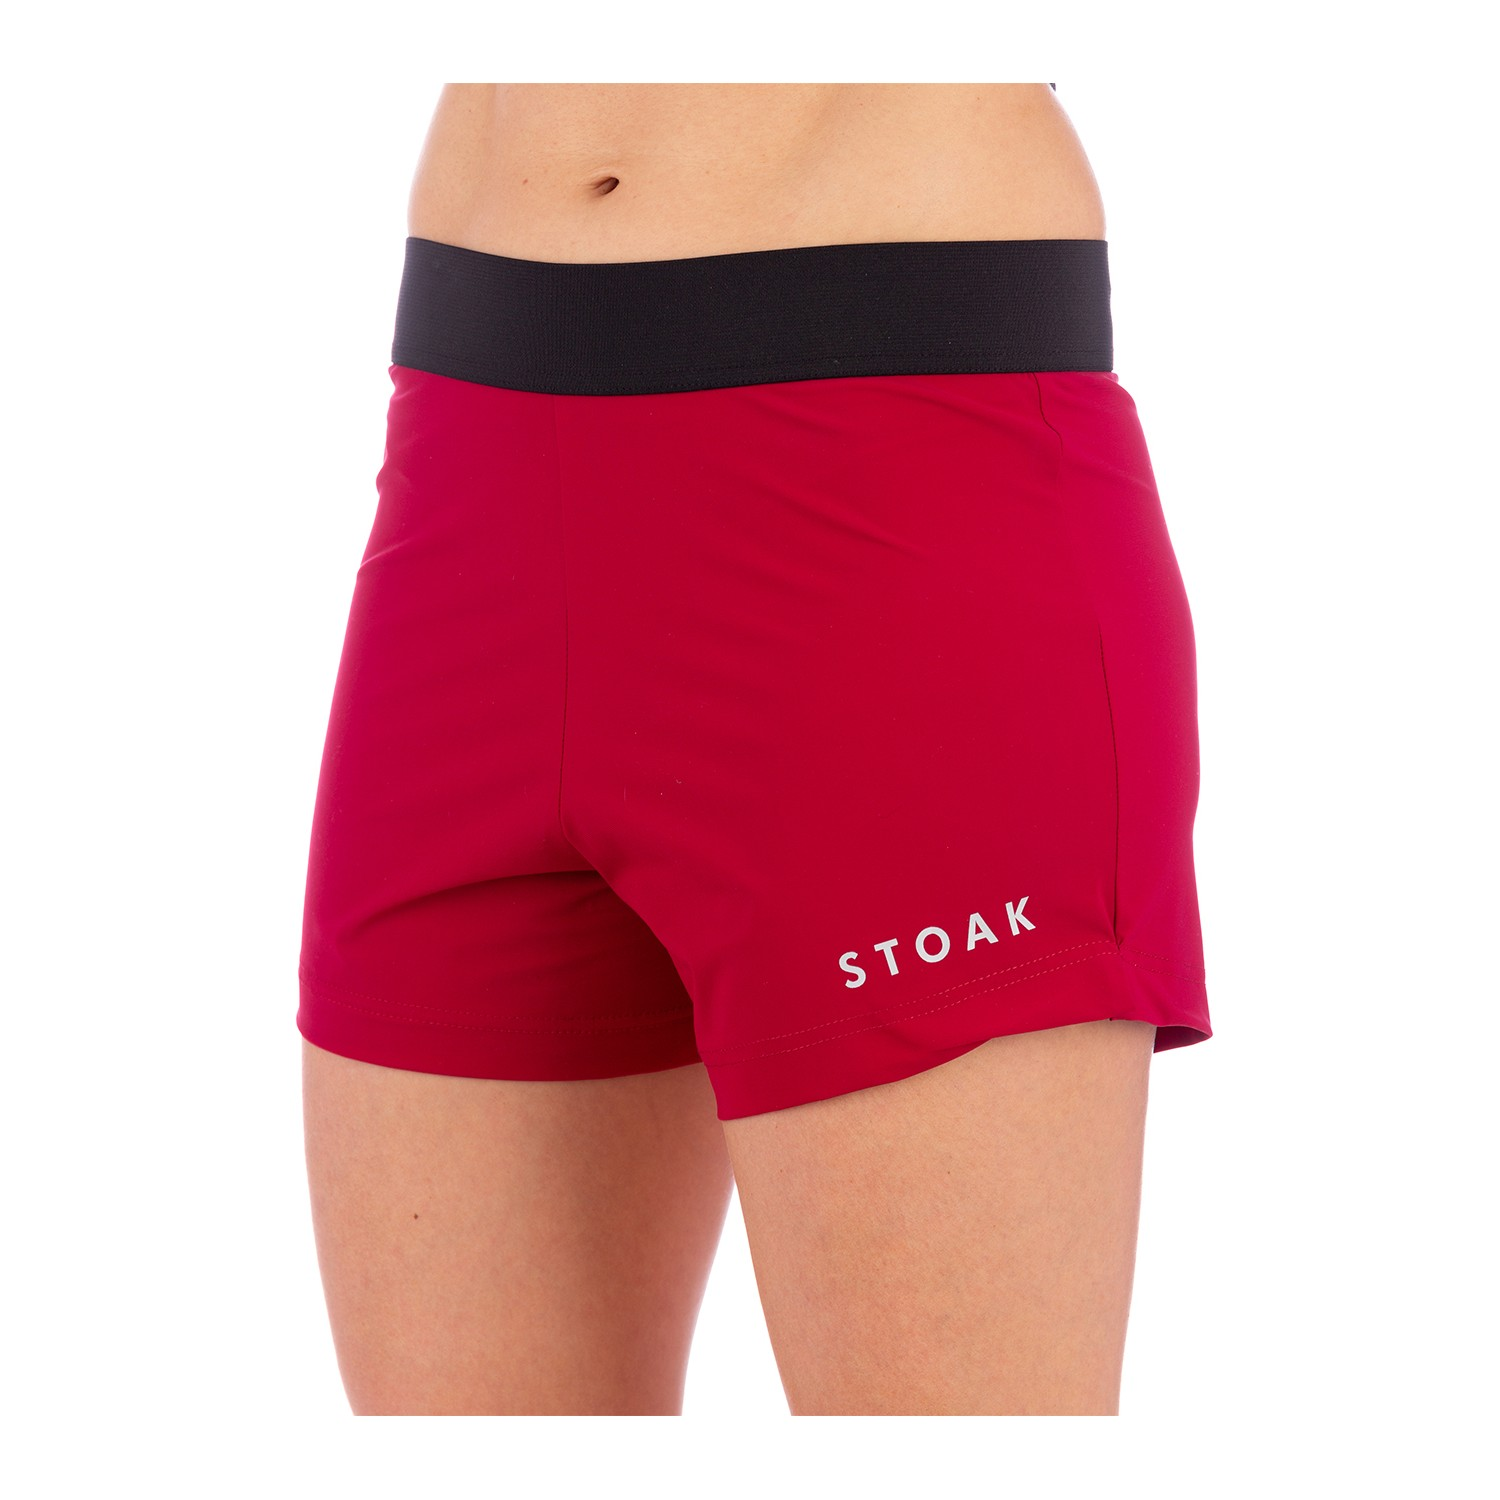 STOAK RUSH Women Athletic Shorts